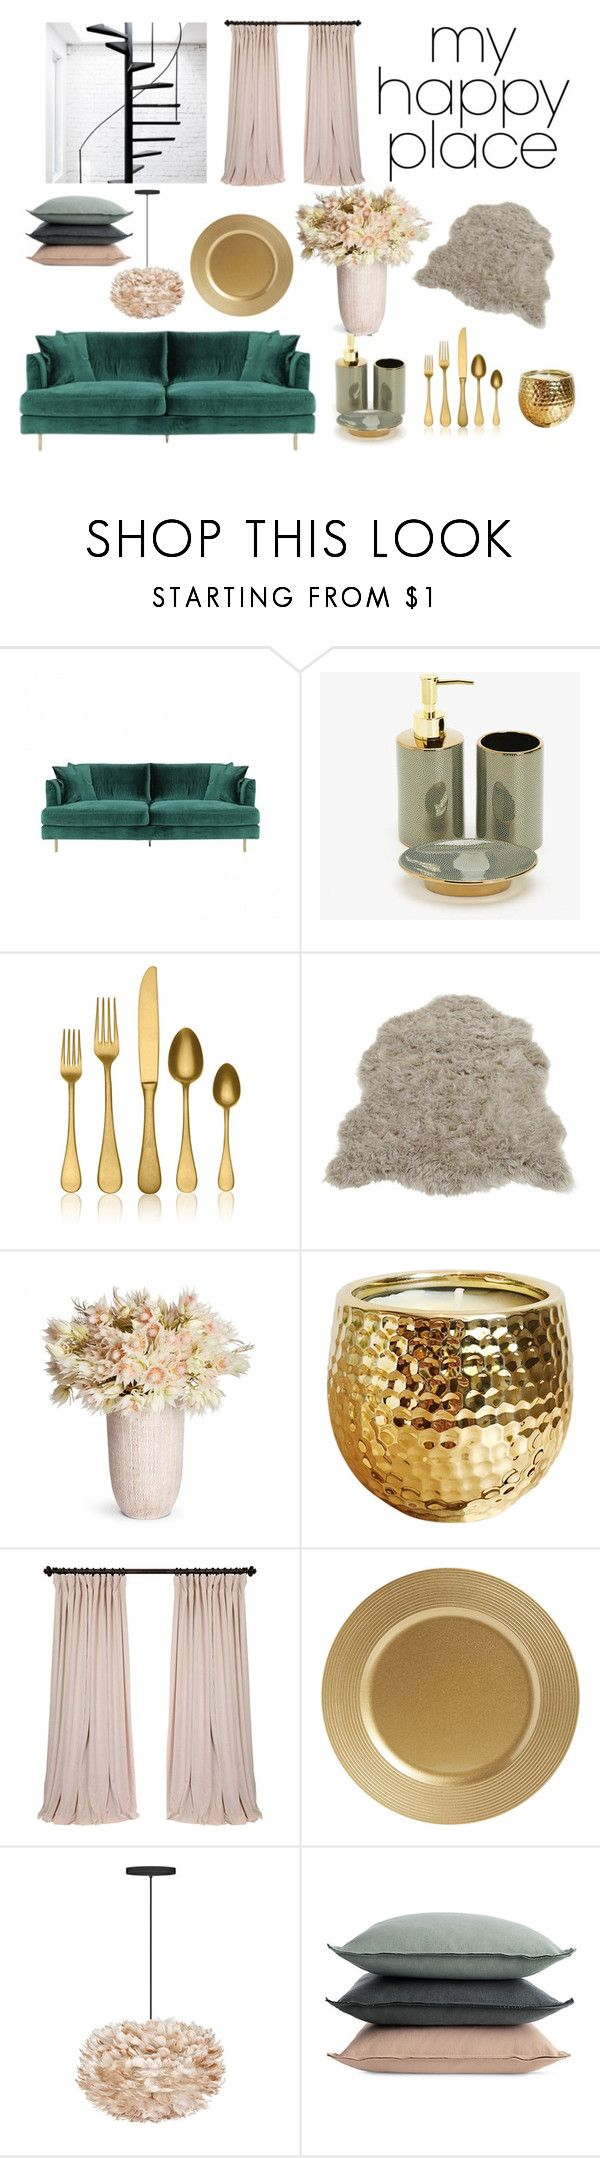 Home sick by idahedbom on Polyvore featuring interior, interiors, interior design, home, home decor, interior decorating, Eos, Zara Home, Mepra and Design Within Reach